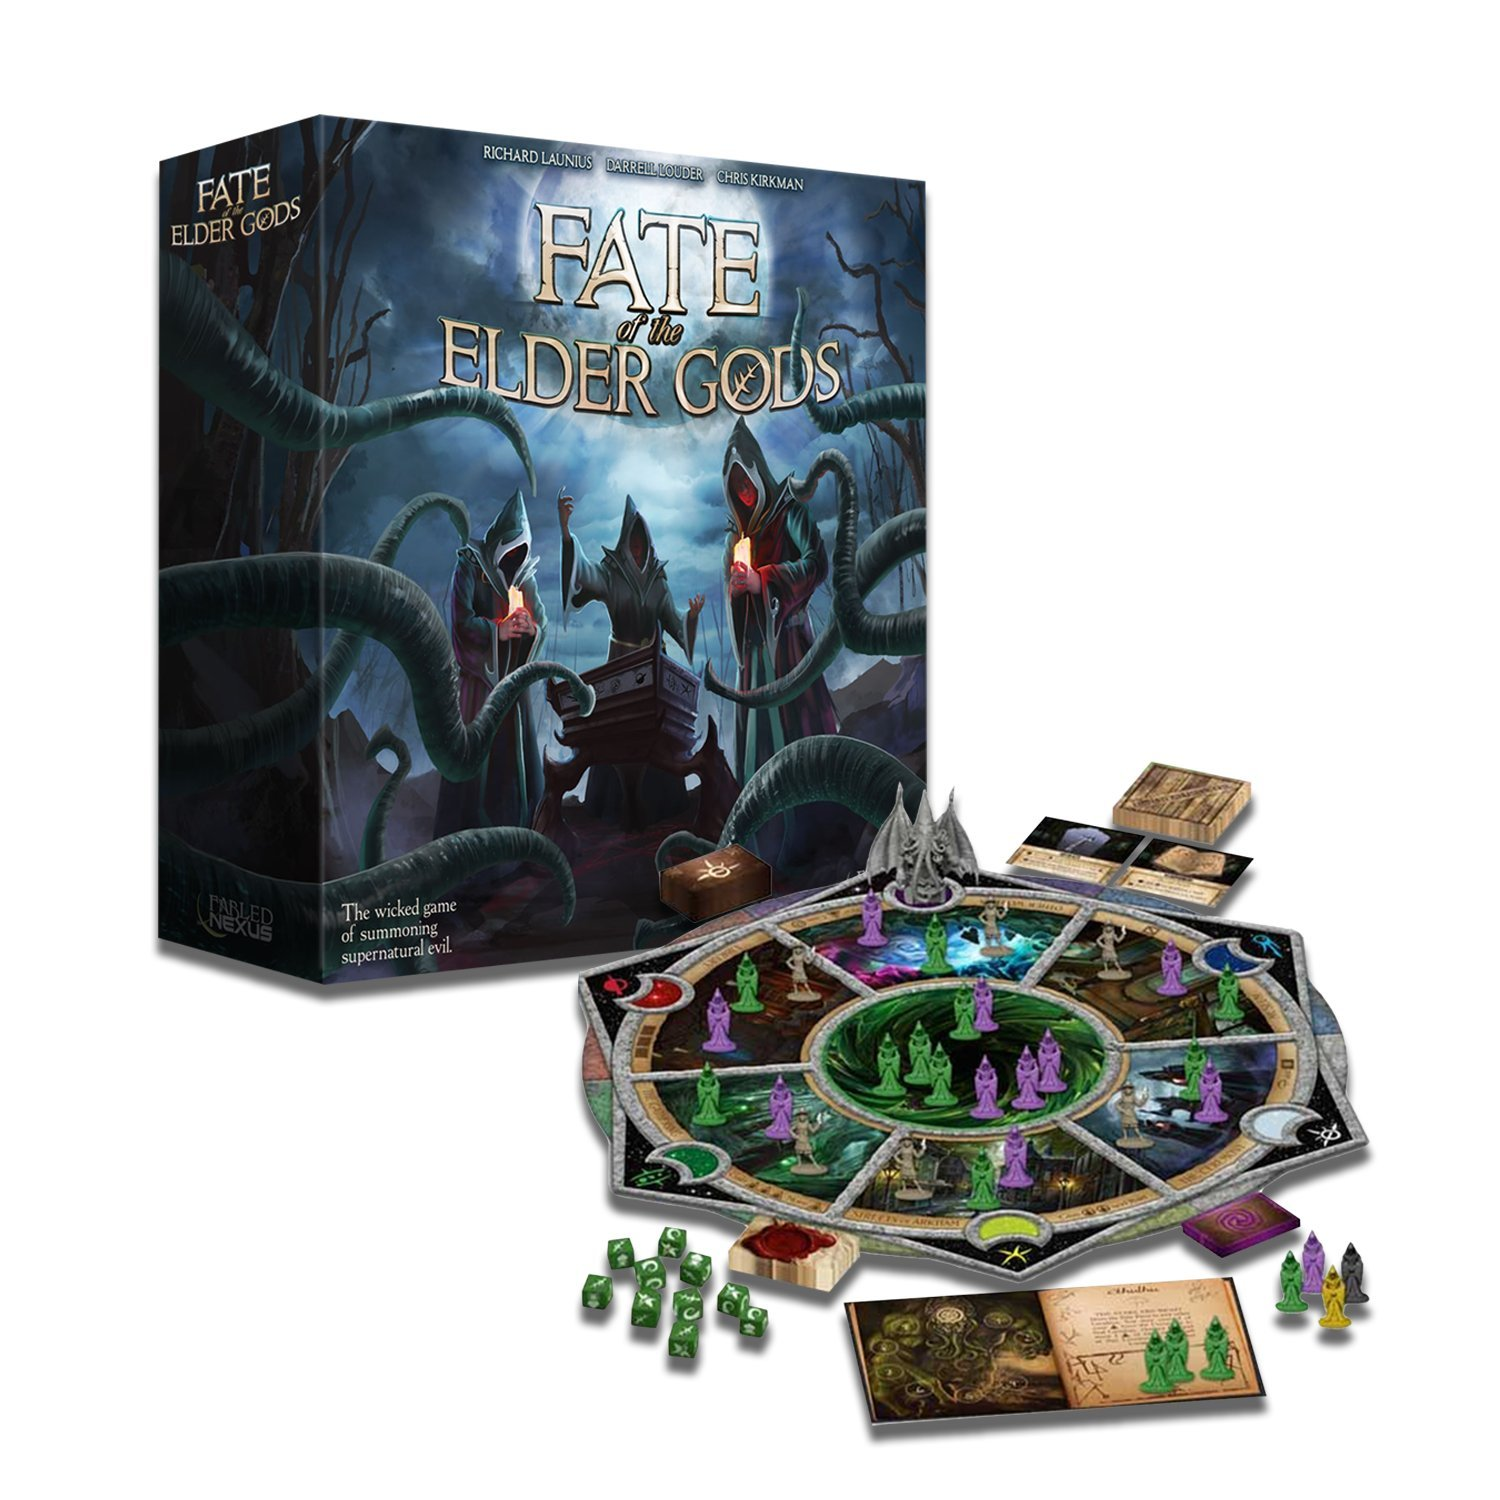 Fable Nexus Games FOEG: Core Fate of The Elder Gods Juego de Mesa, Multicolor: Amazon.es: Juguetes y juegos